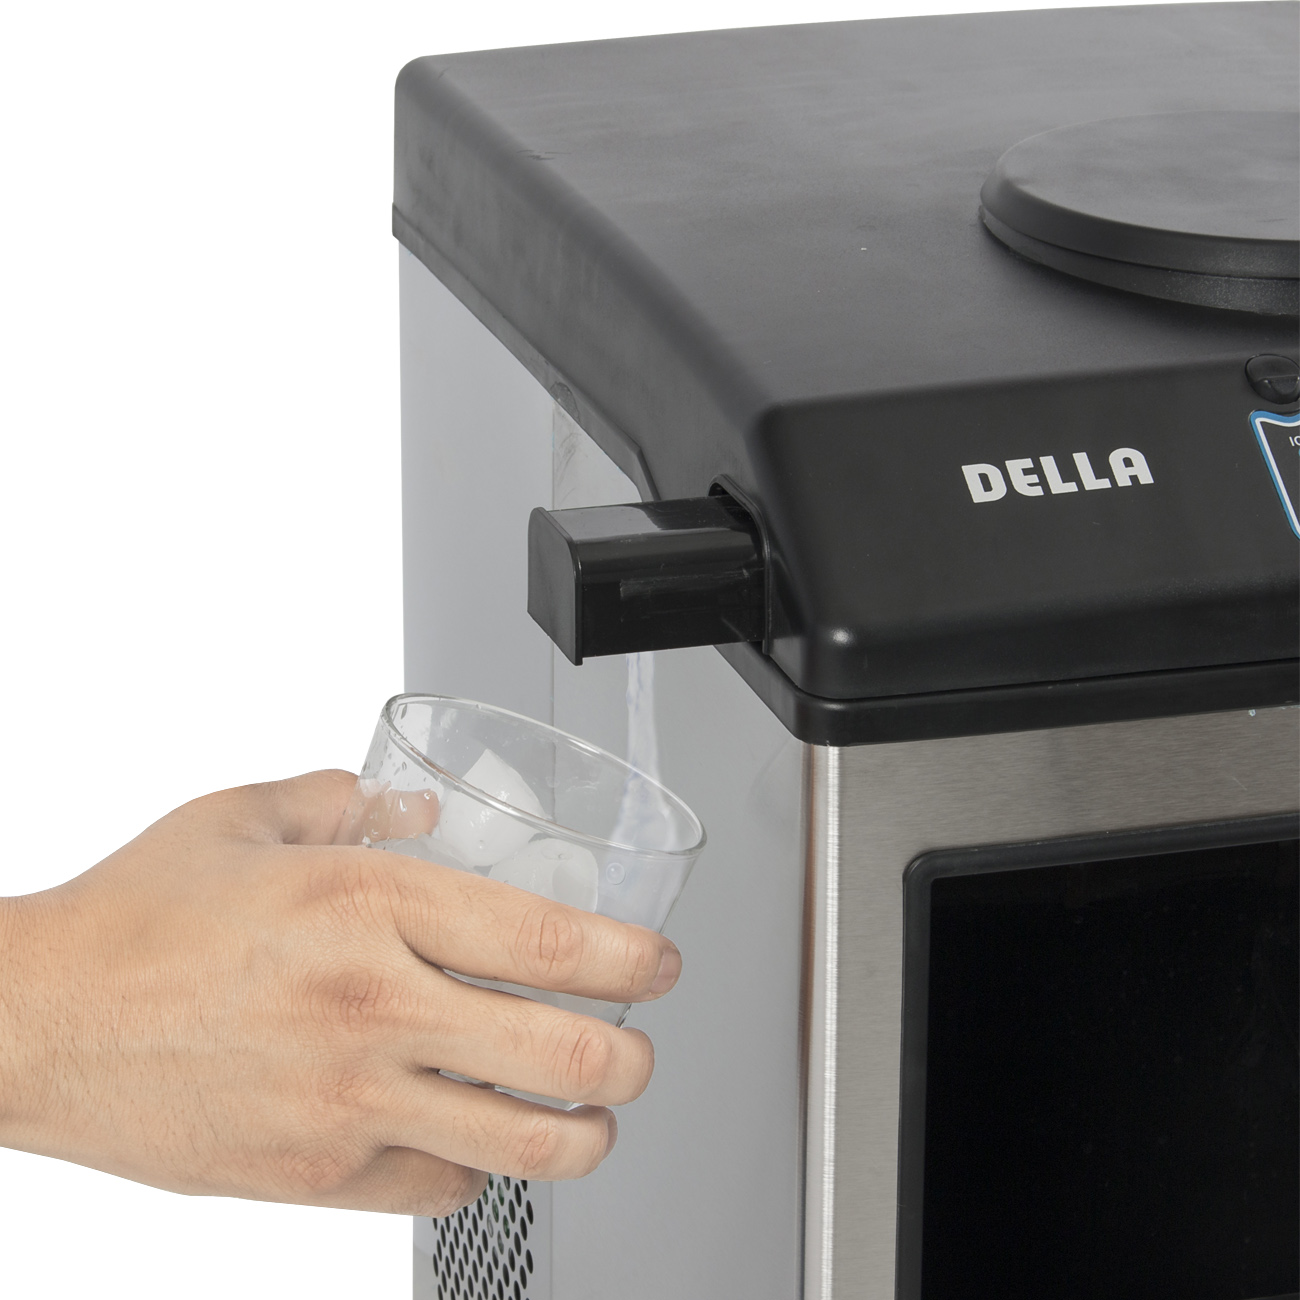 Merveilleux Water Dispenser W/ Built In Ice Maker Machine Portable Counter Stainless  Steel